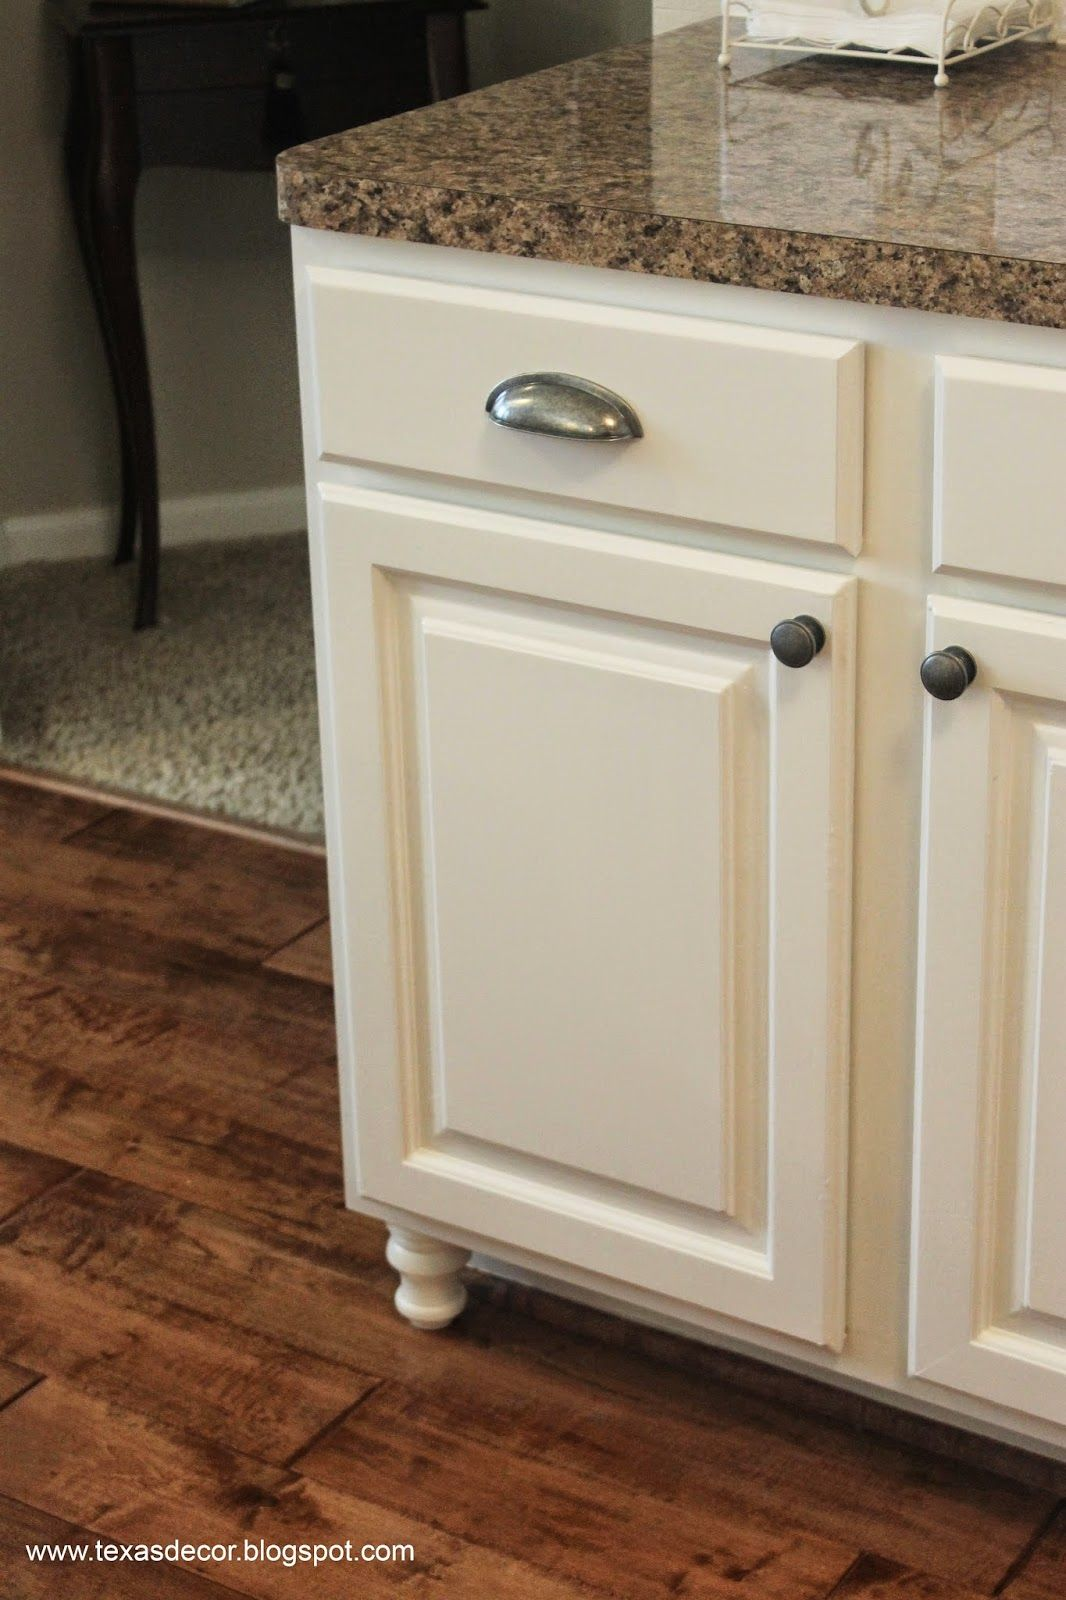 adding furniture feet to kitchen cabinets | Kitchen cabinet ...